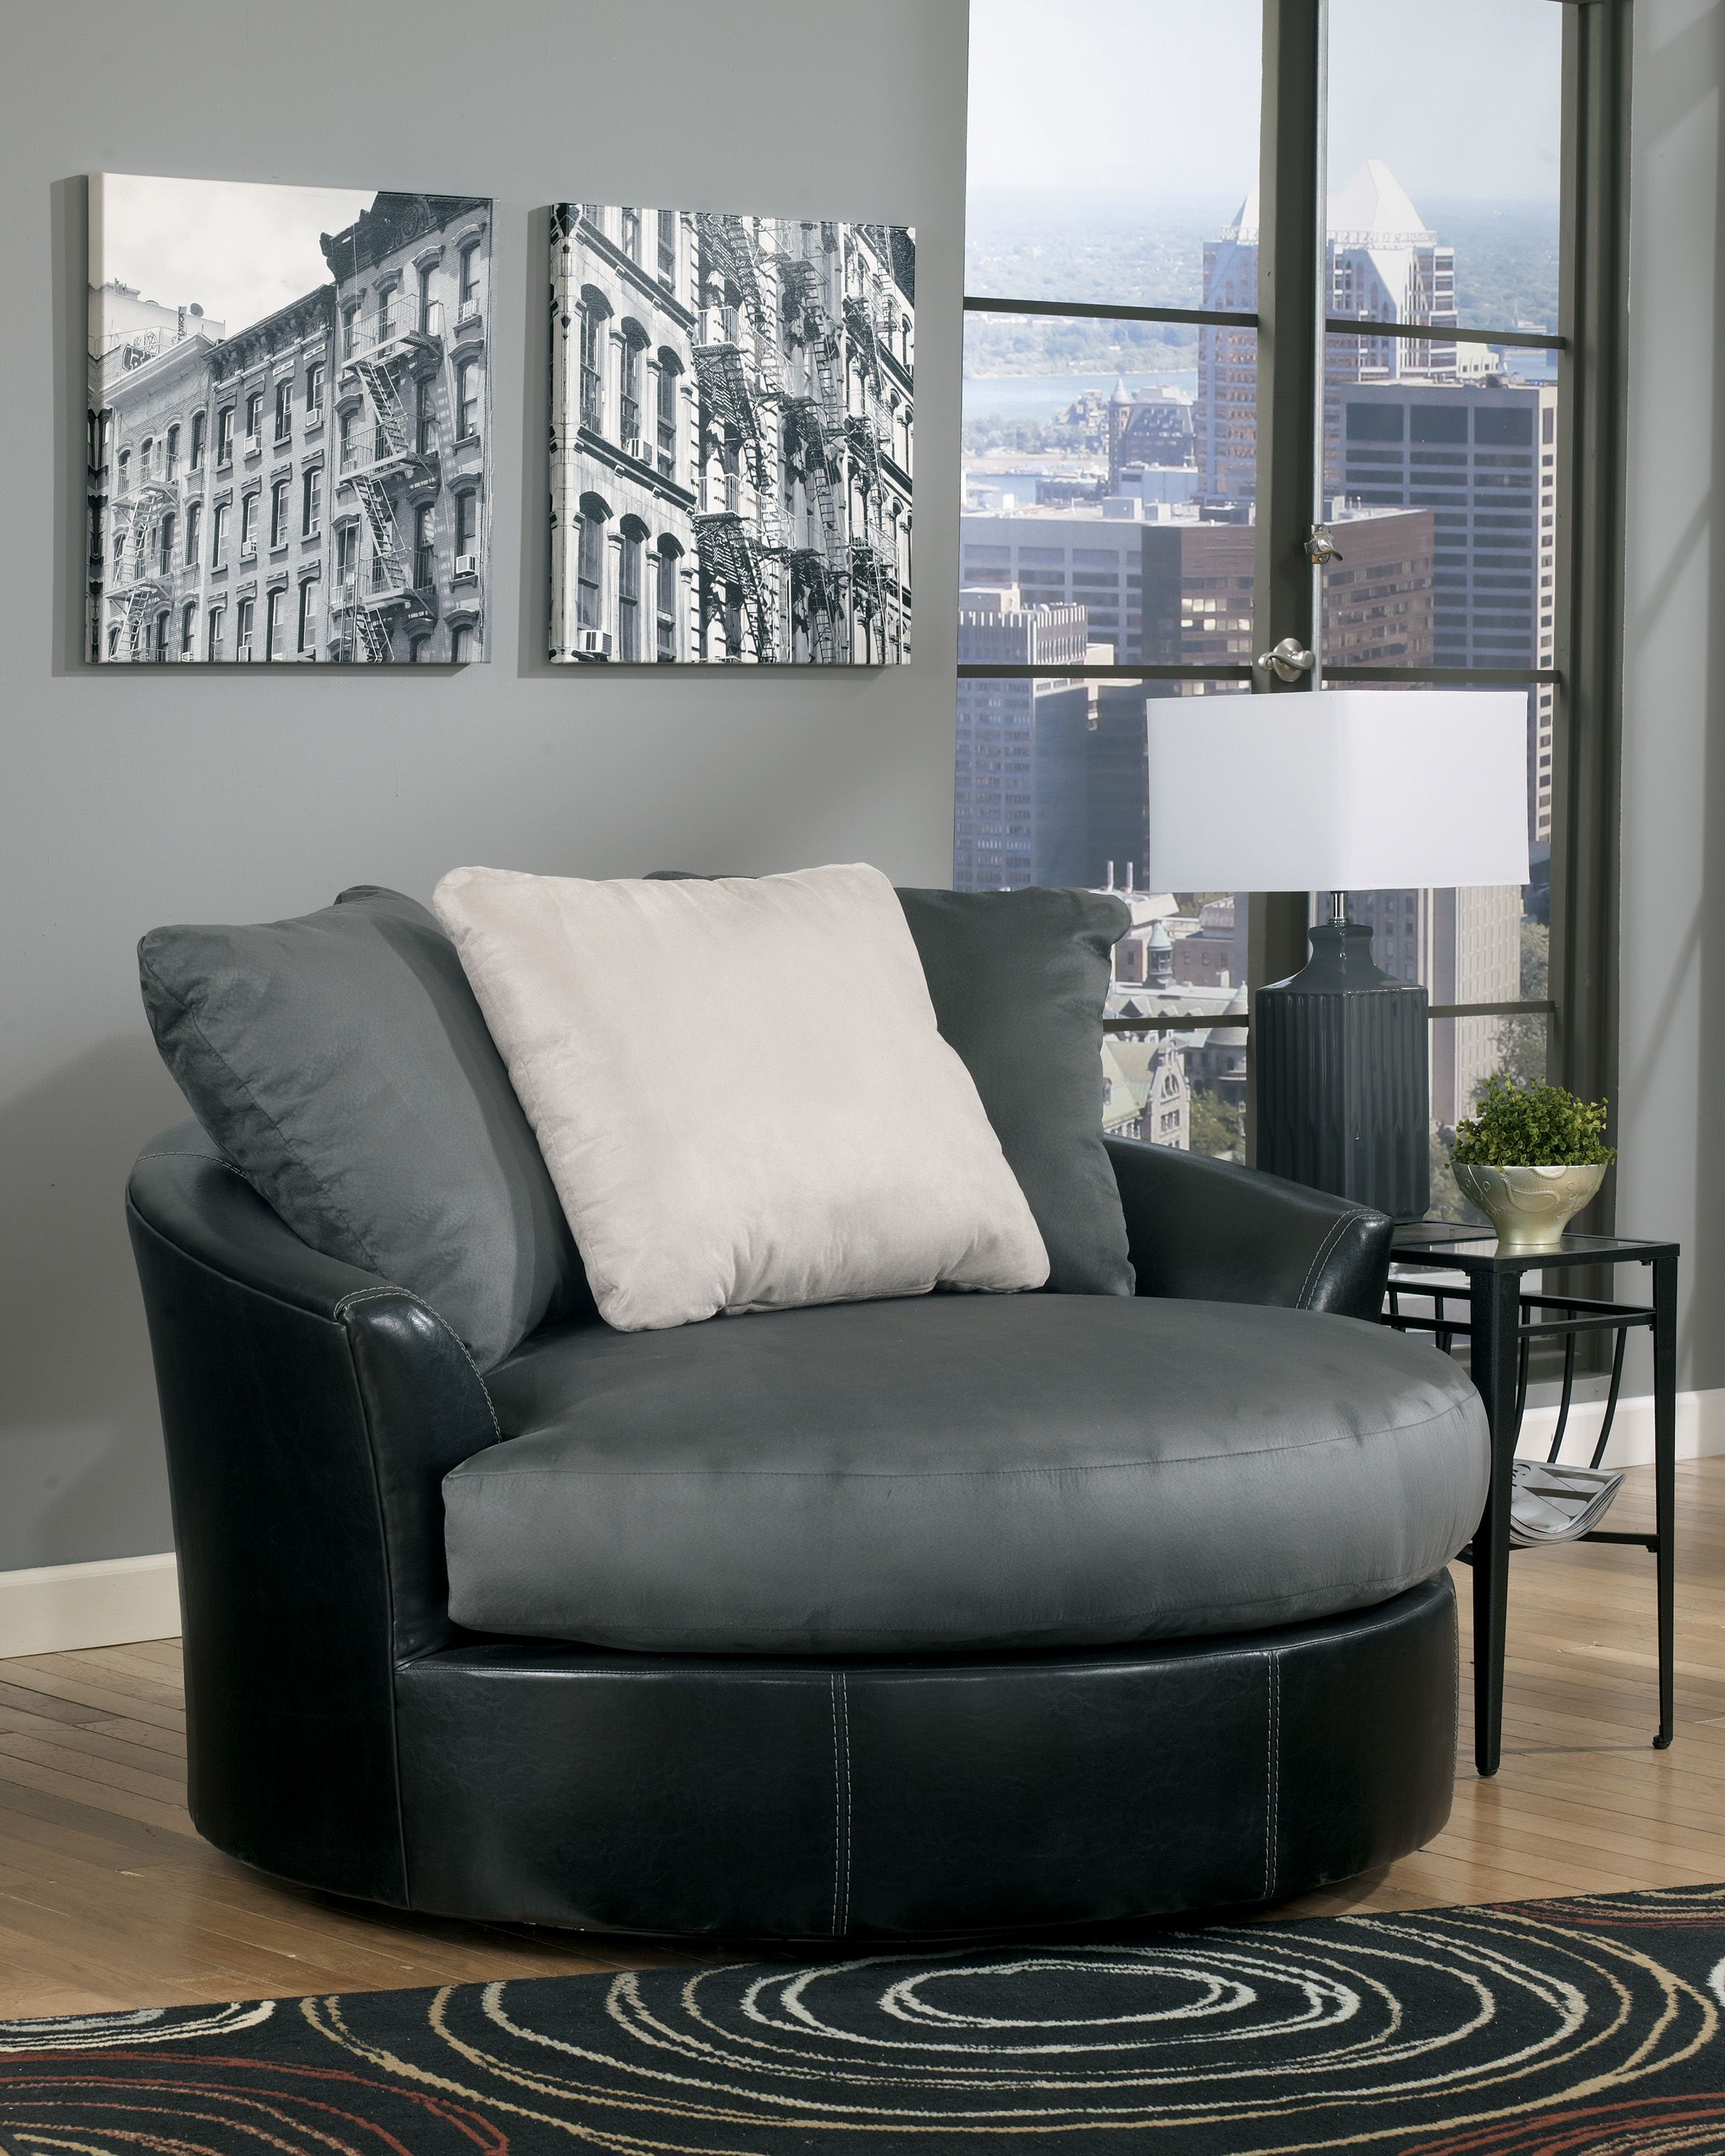 swivel accent chairs for living room. Flawless Masoli  Cobblestone Oversized Swivel Accent Chair turns any living room into the relaxing